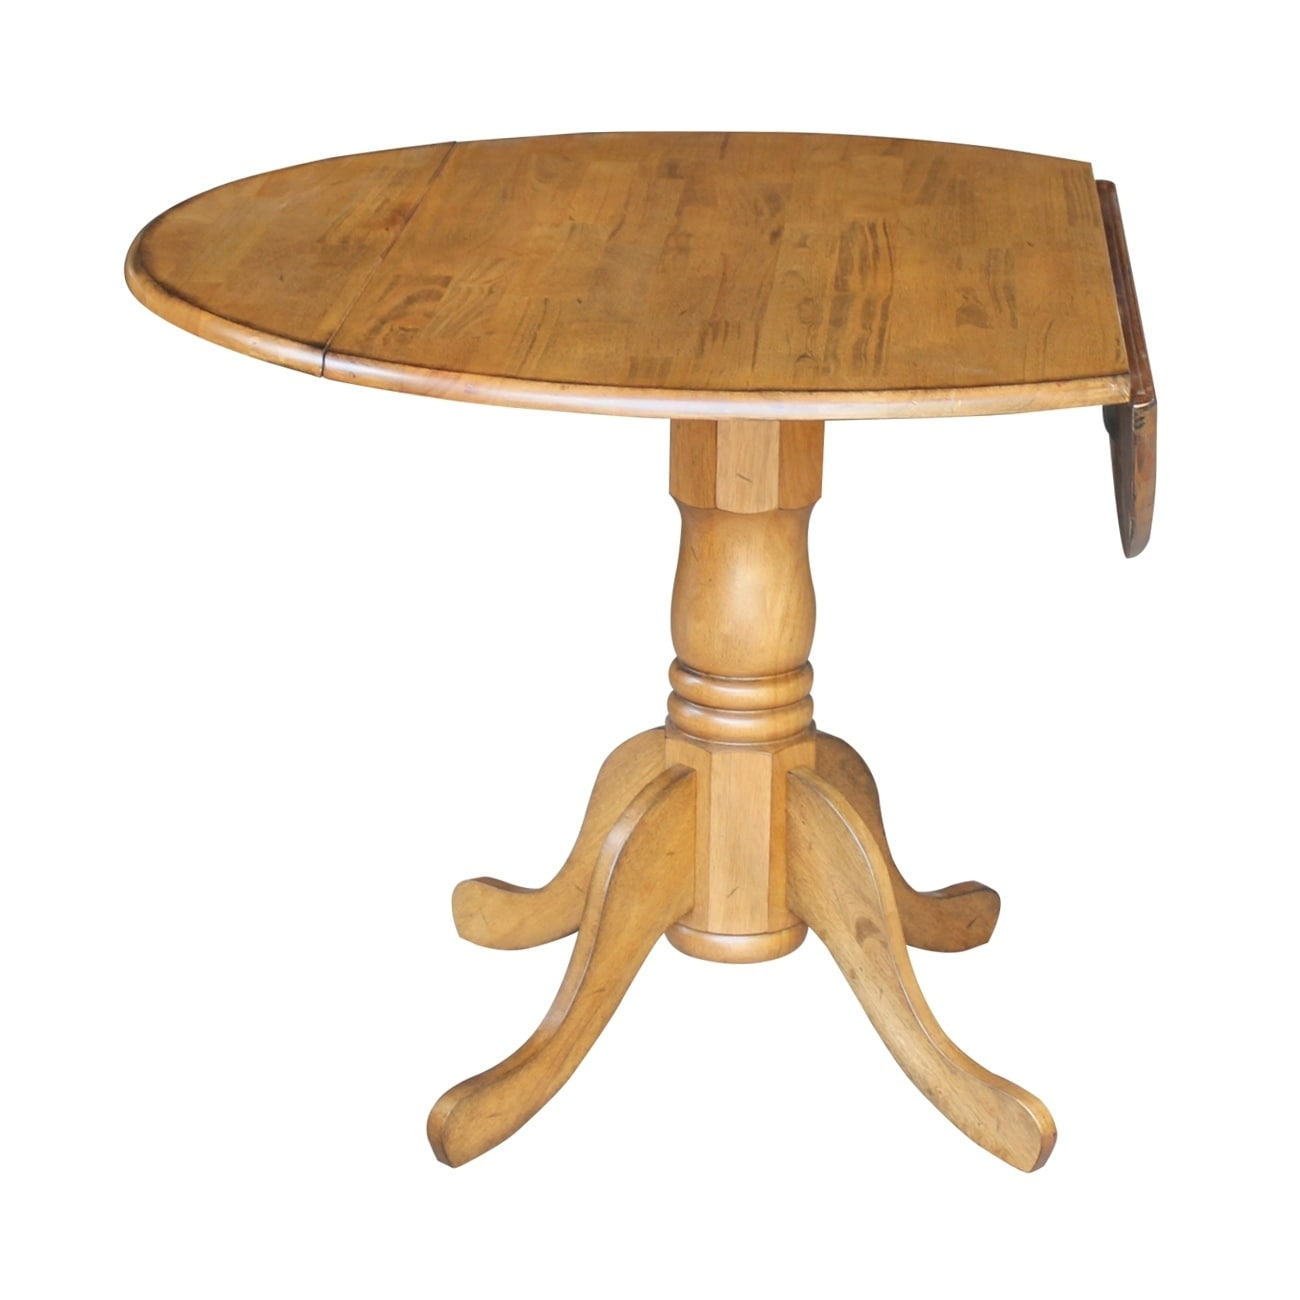 Superieur International Concepts Dual Drop Leaf Round 42 Inch Leaf Pedestal Table    Pecan   Free Shipping Today   Overstock   19728041